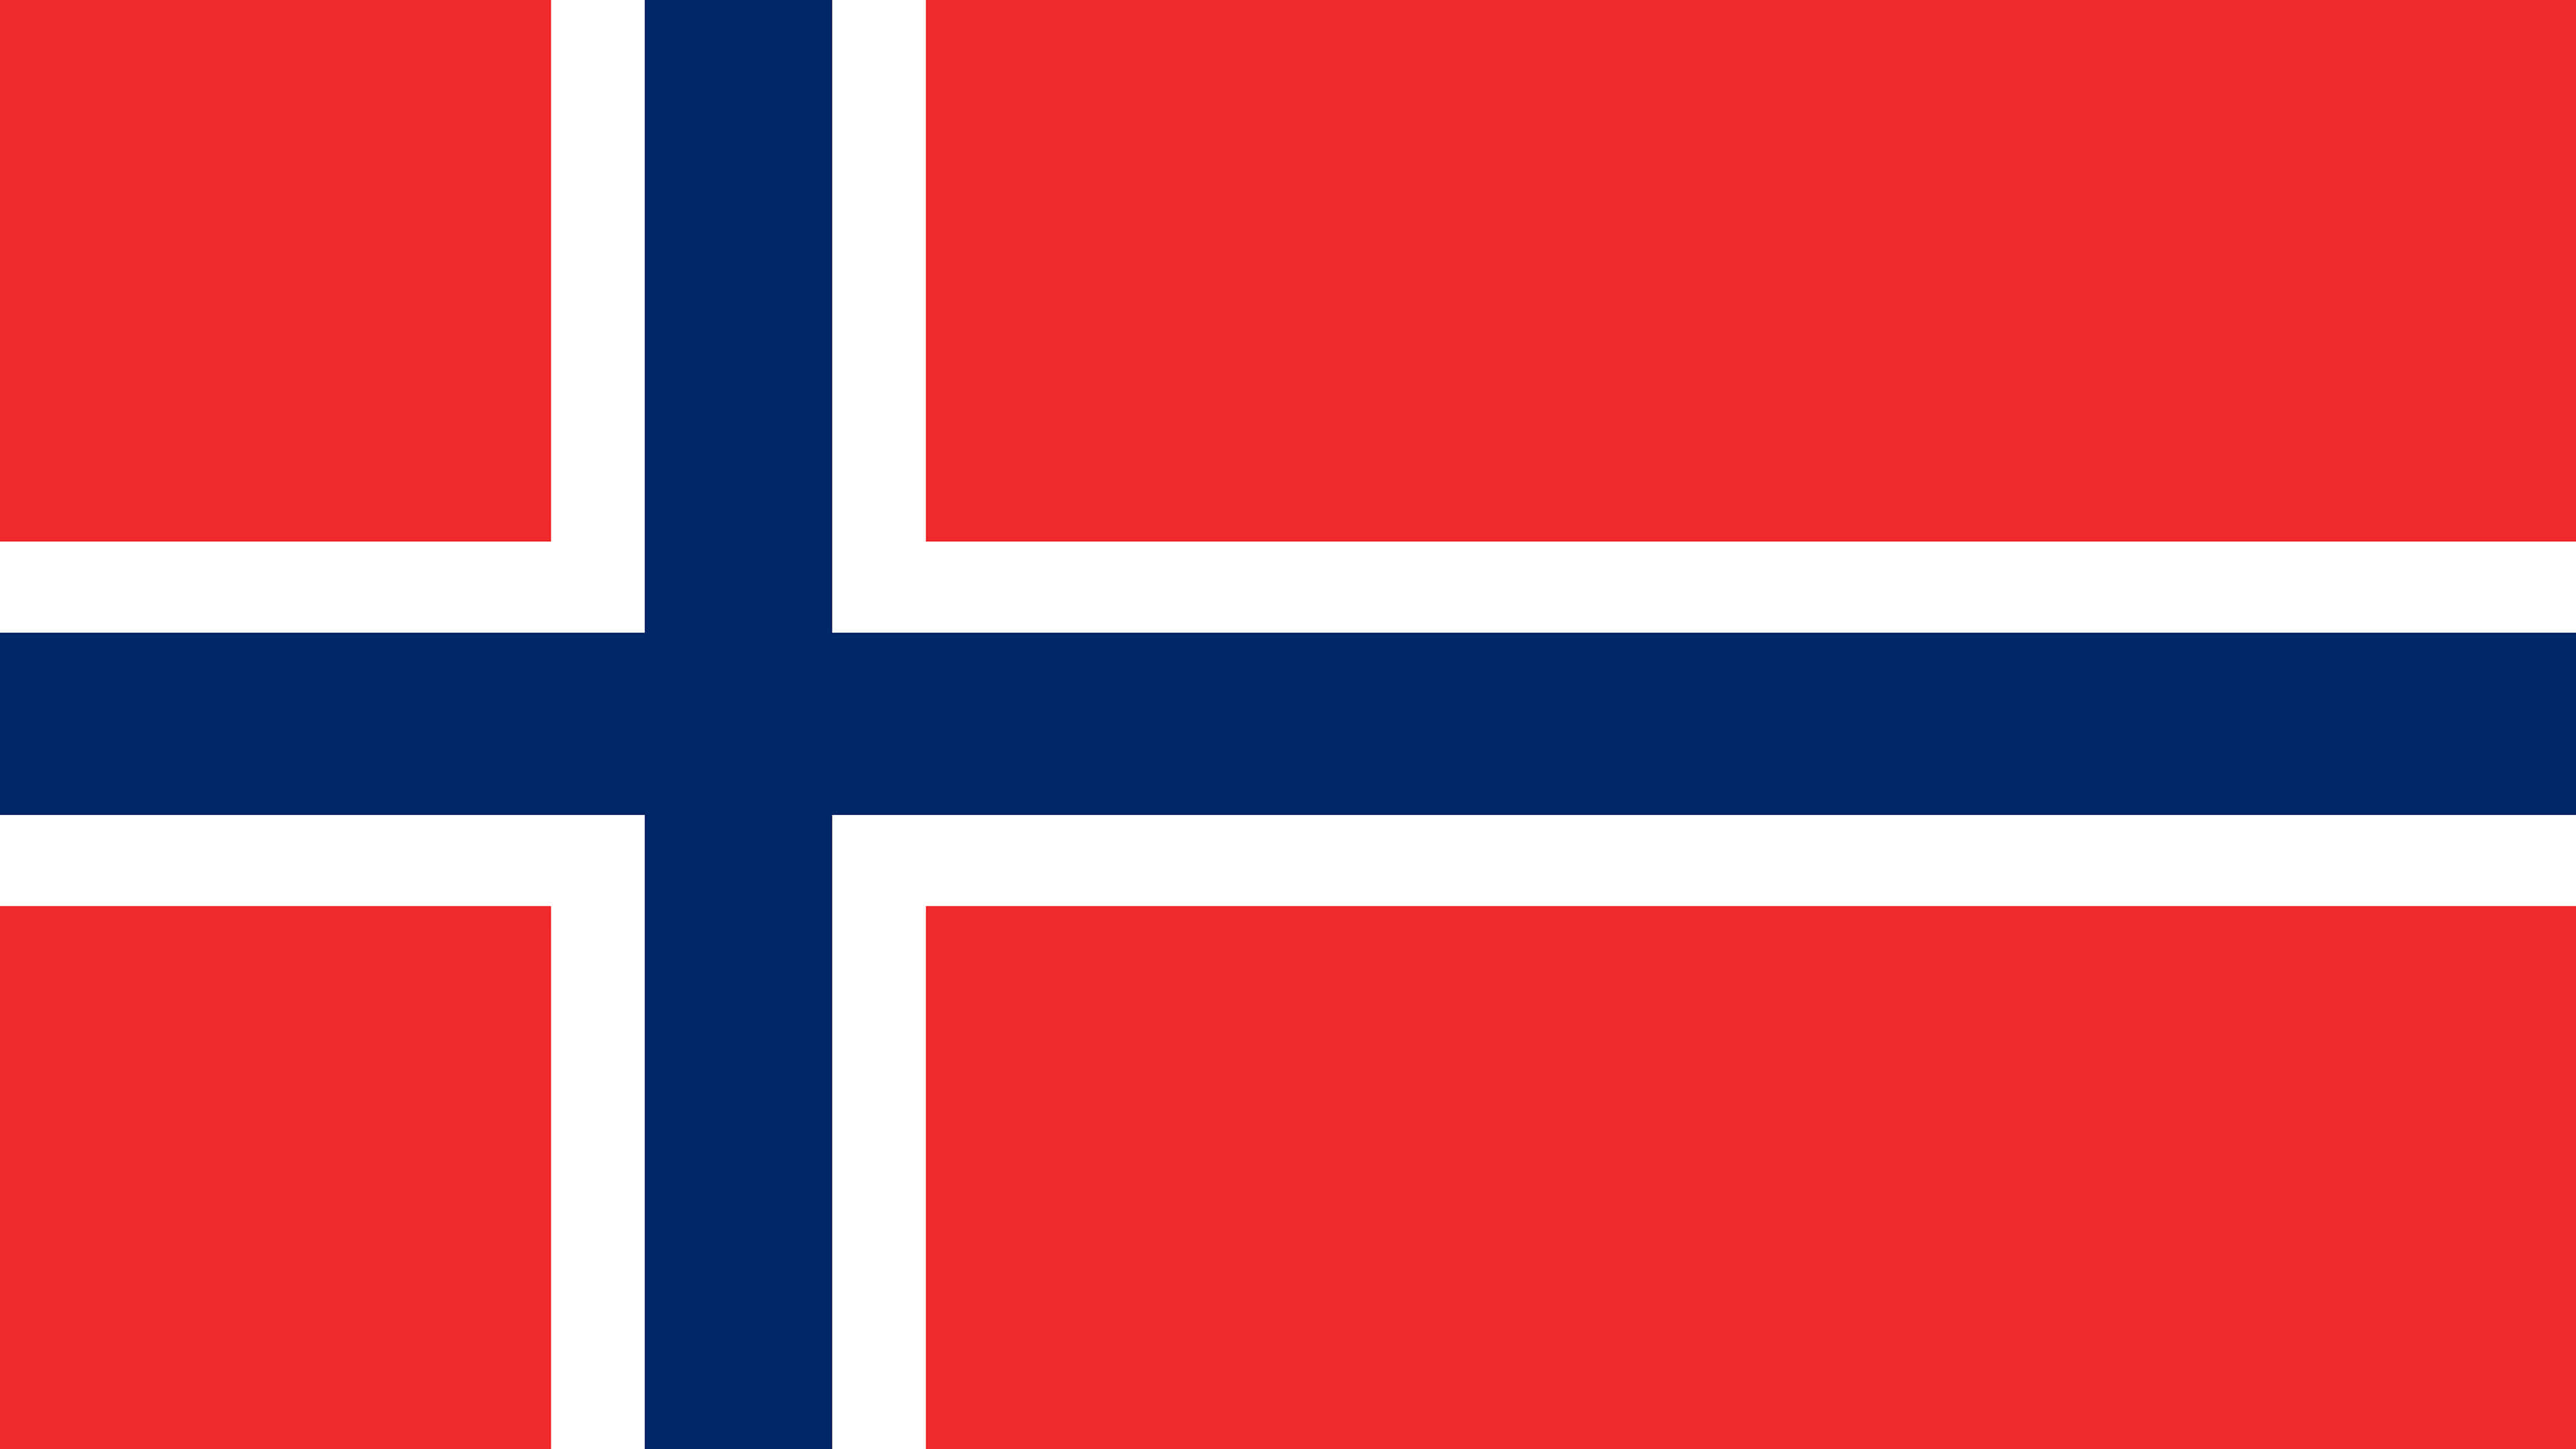 norway flag uhd 4k wallpaper